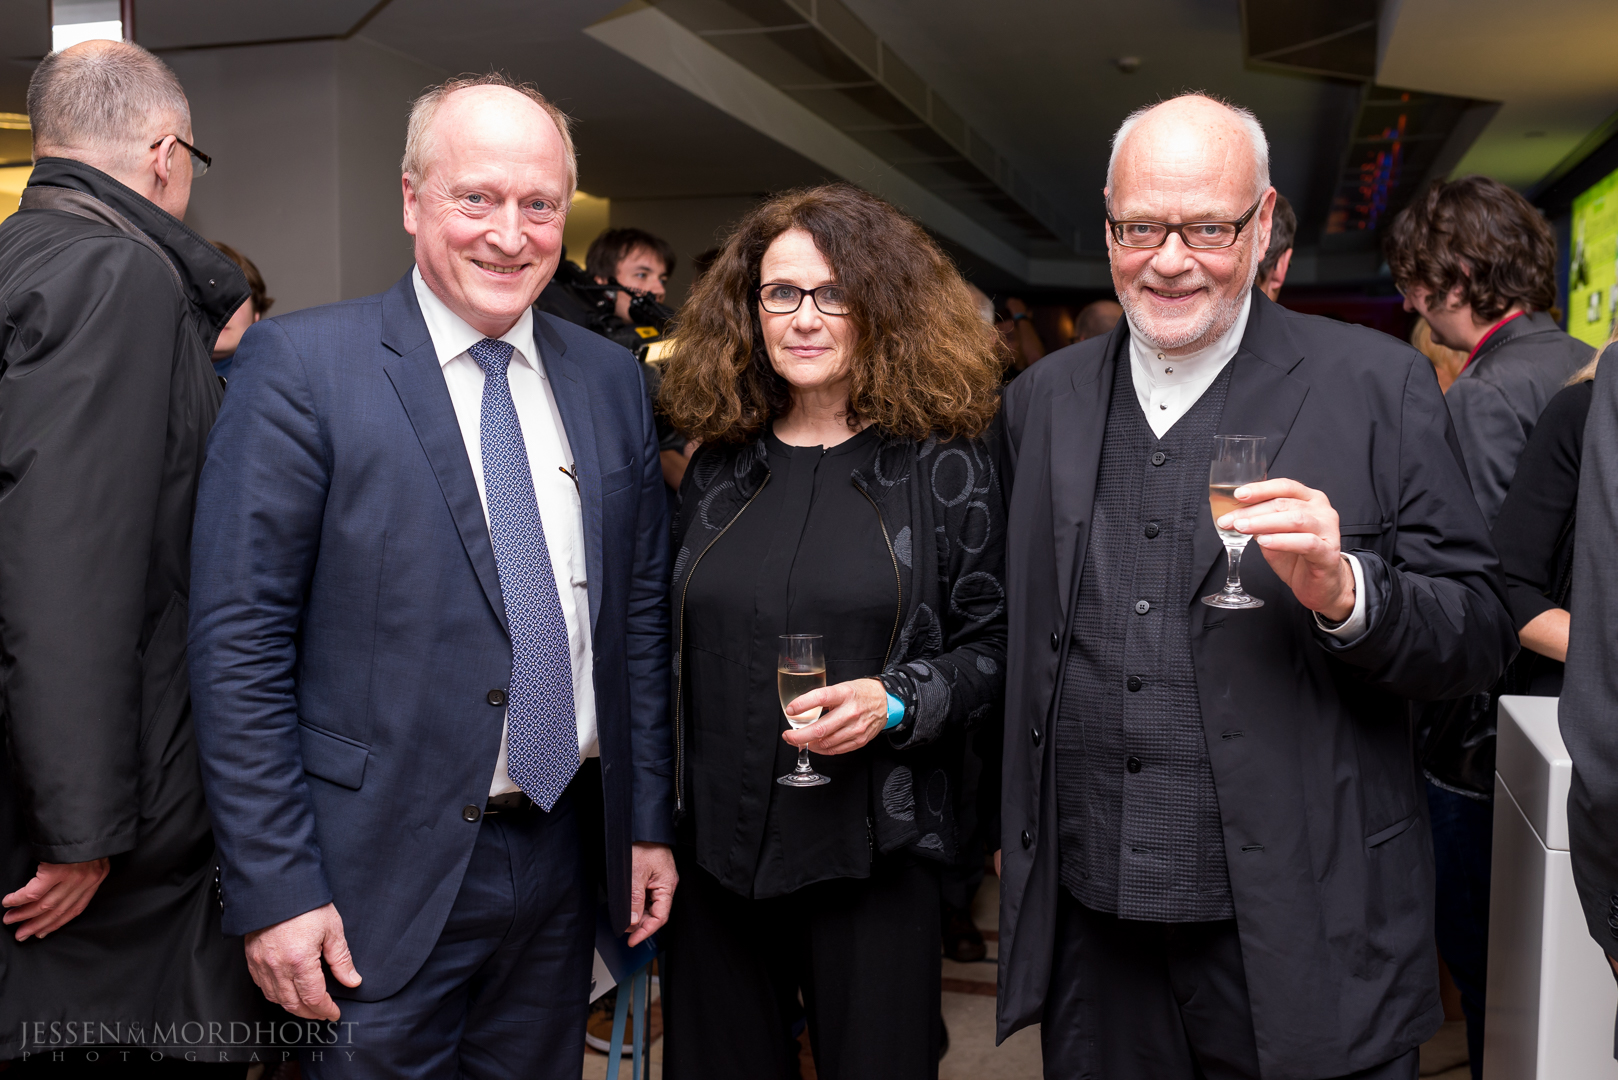 Peter Dinges, Gabriele Brunnenmeyer, Manfred Schmidt